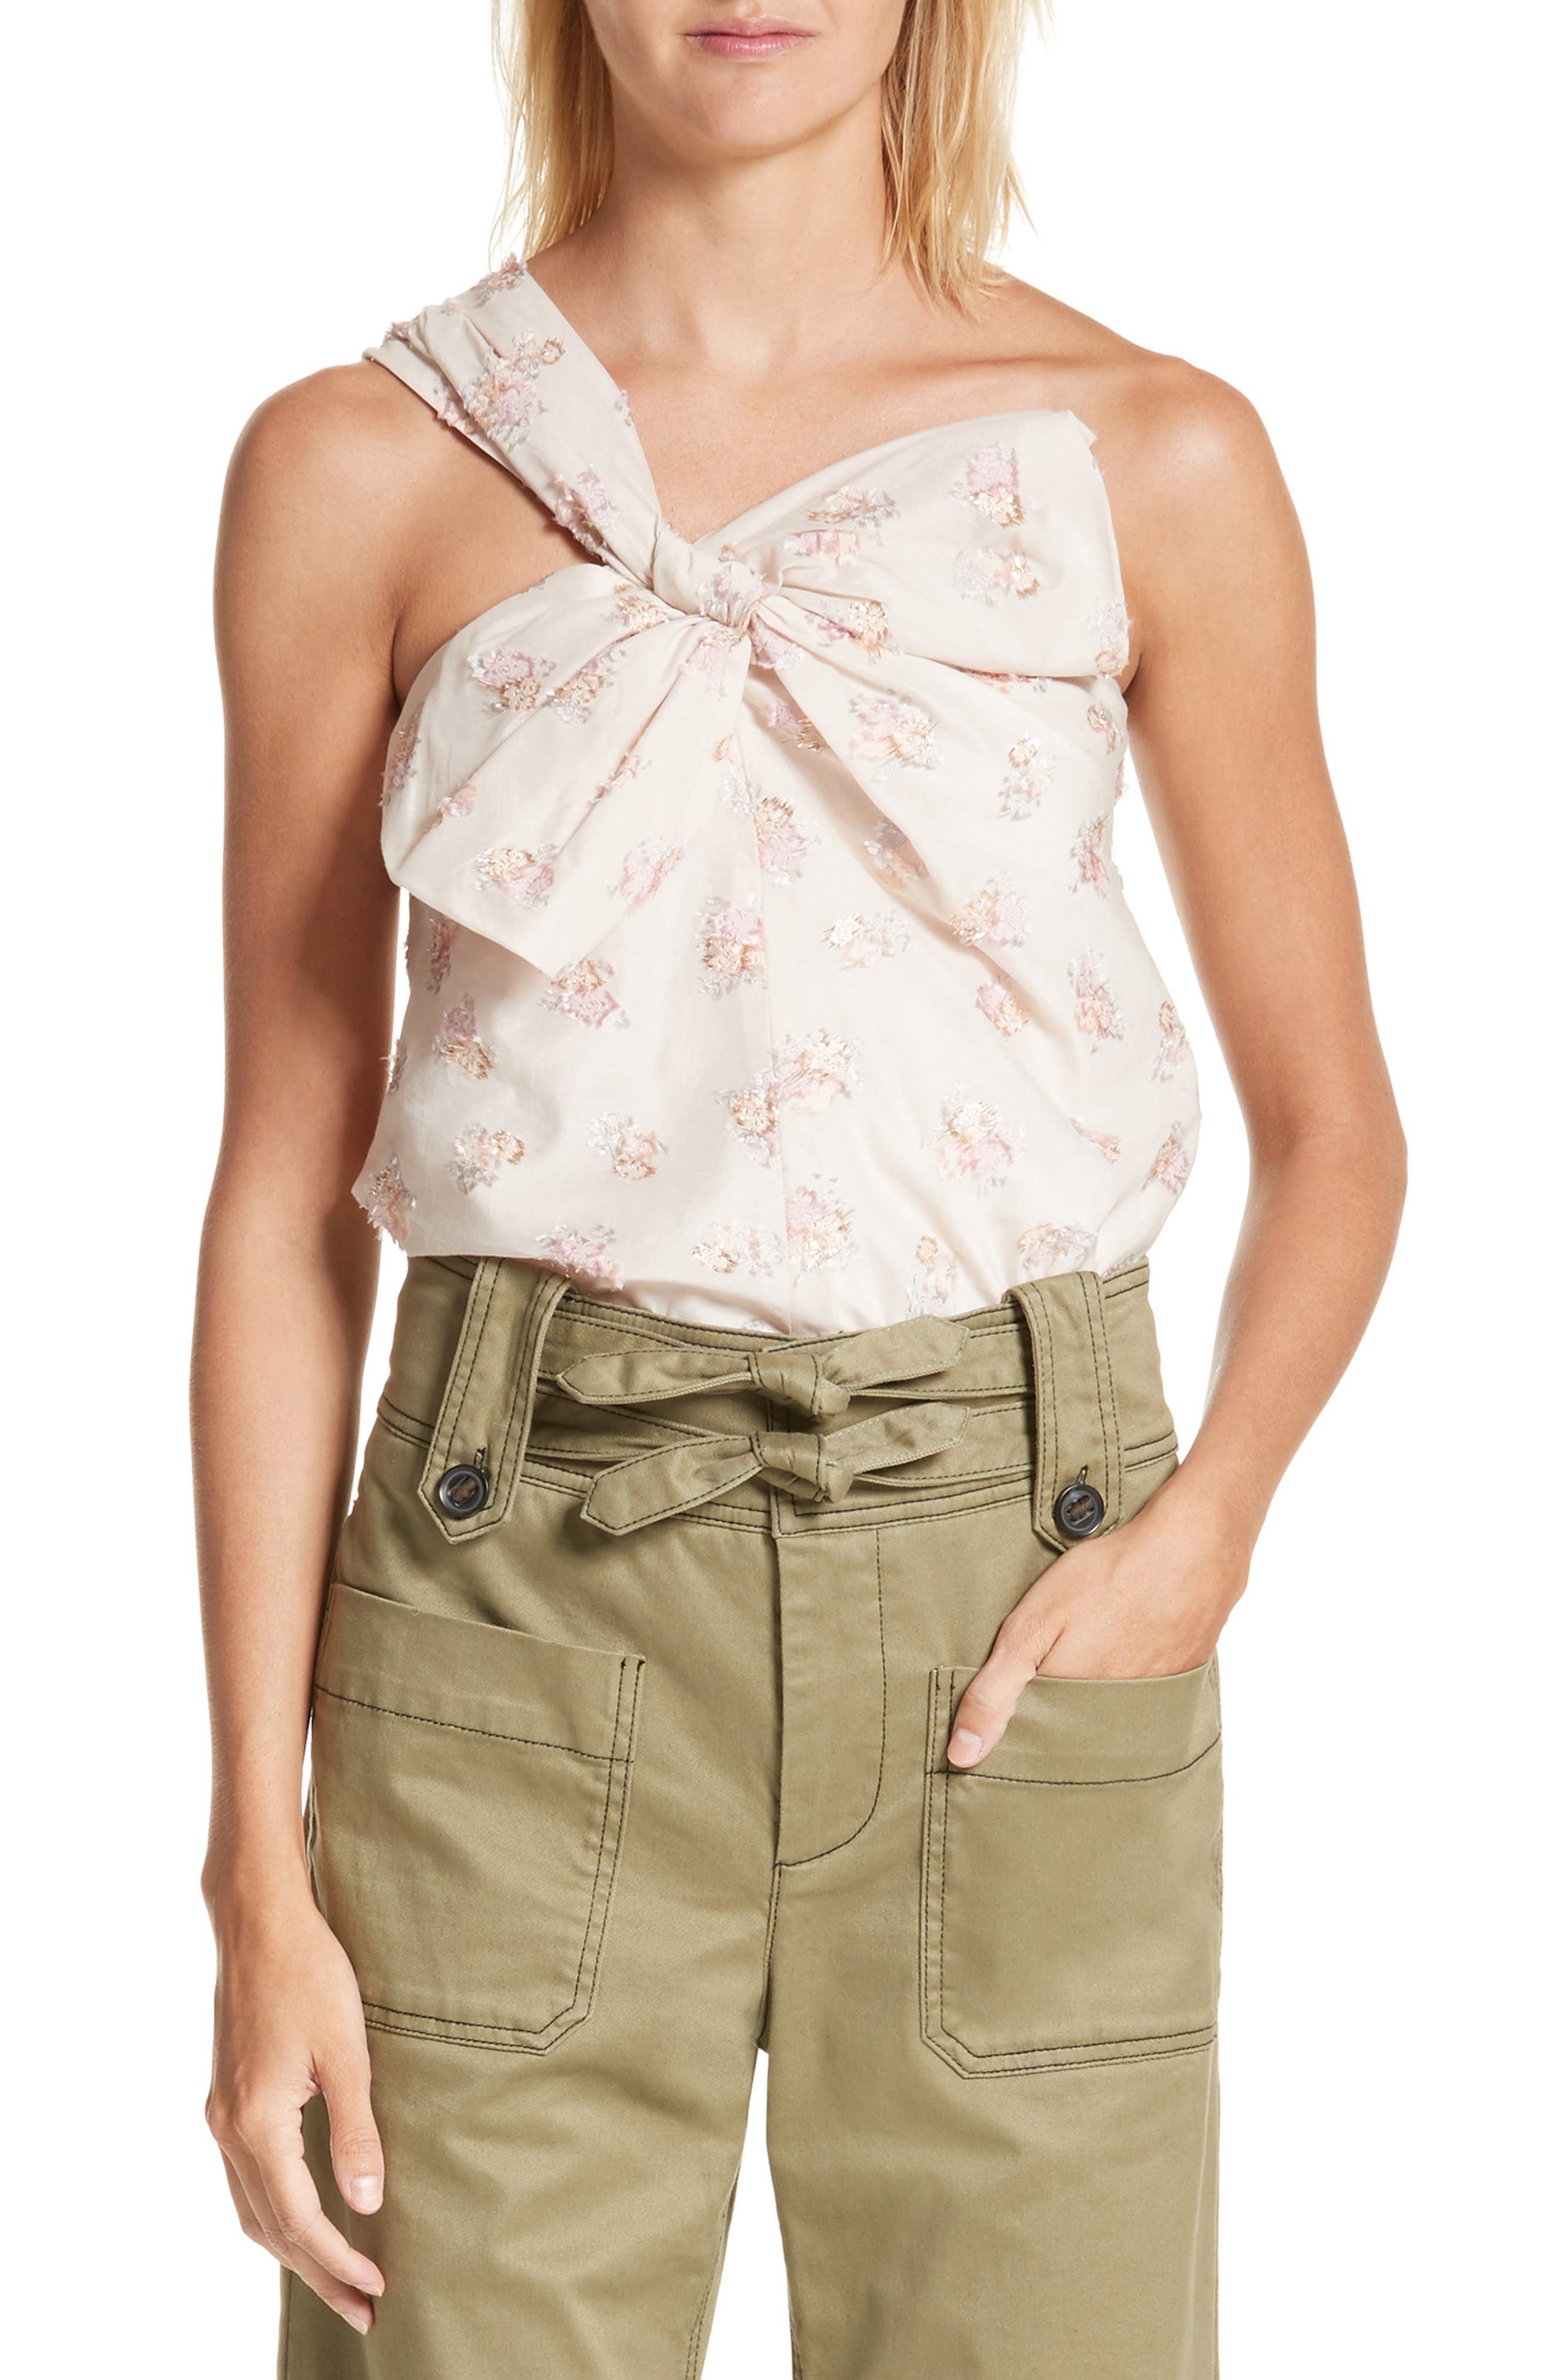 Alternate Image 1 Selected - Rebecca Taylor Bow Front Floral Jacquard Top